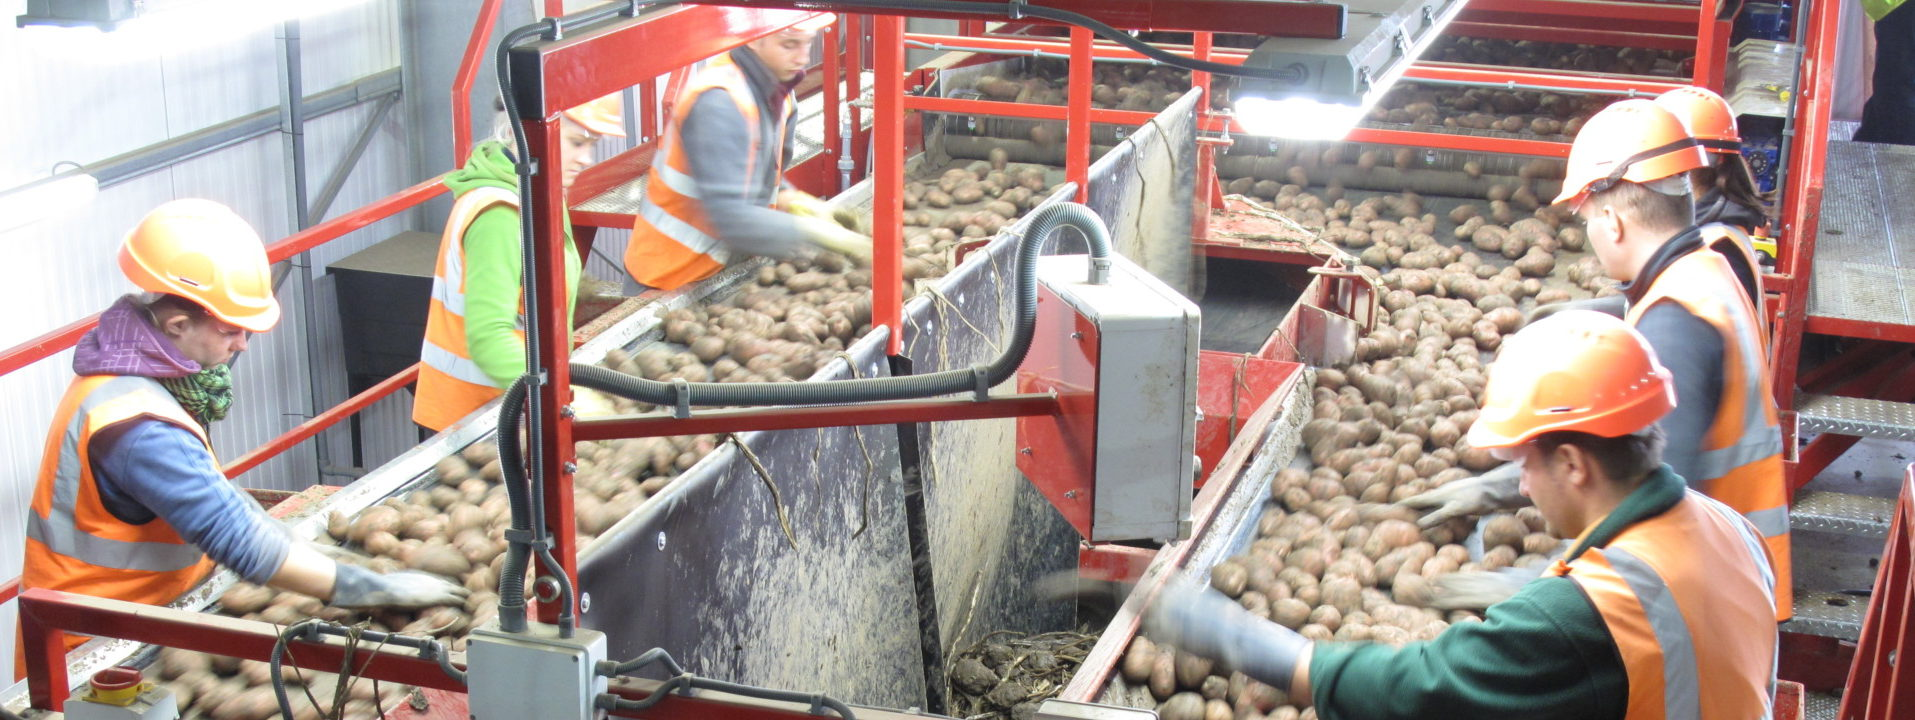 tong-potato-vegetable-inspection-roller-tables-3